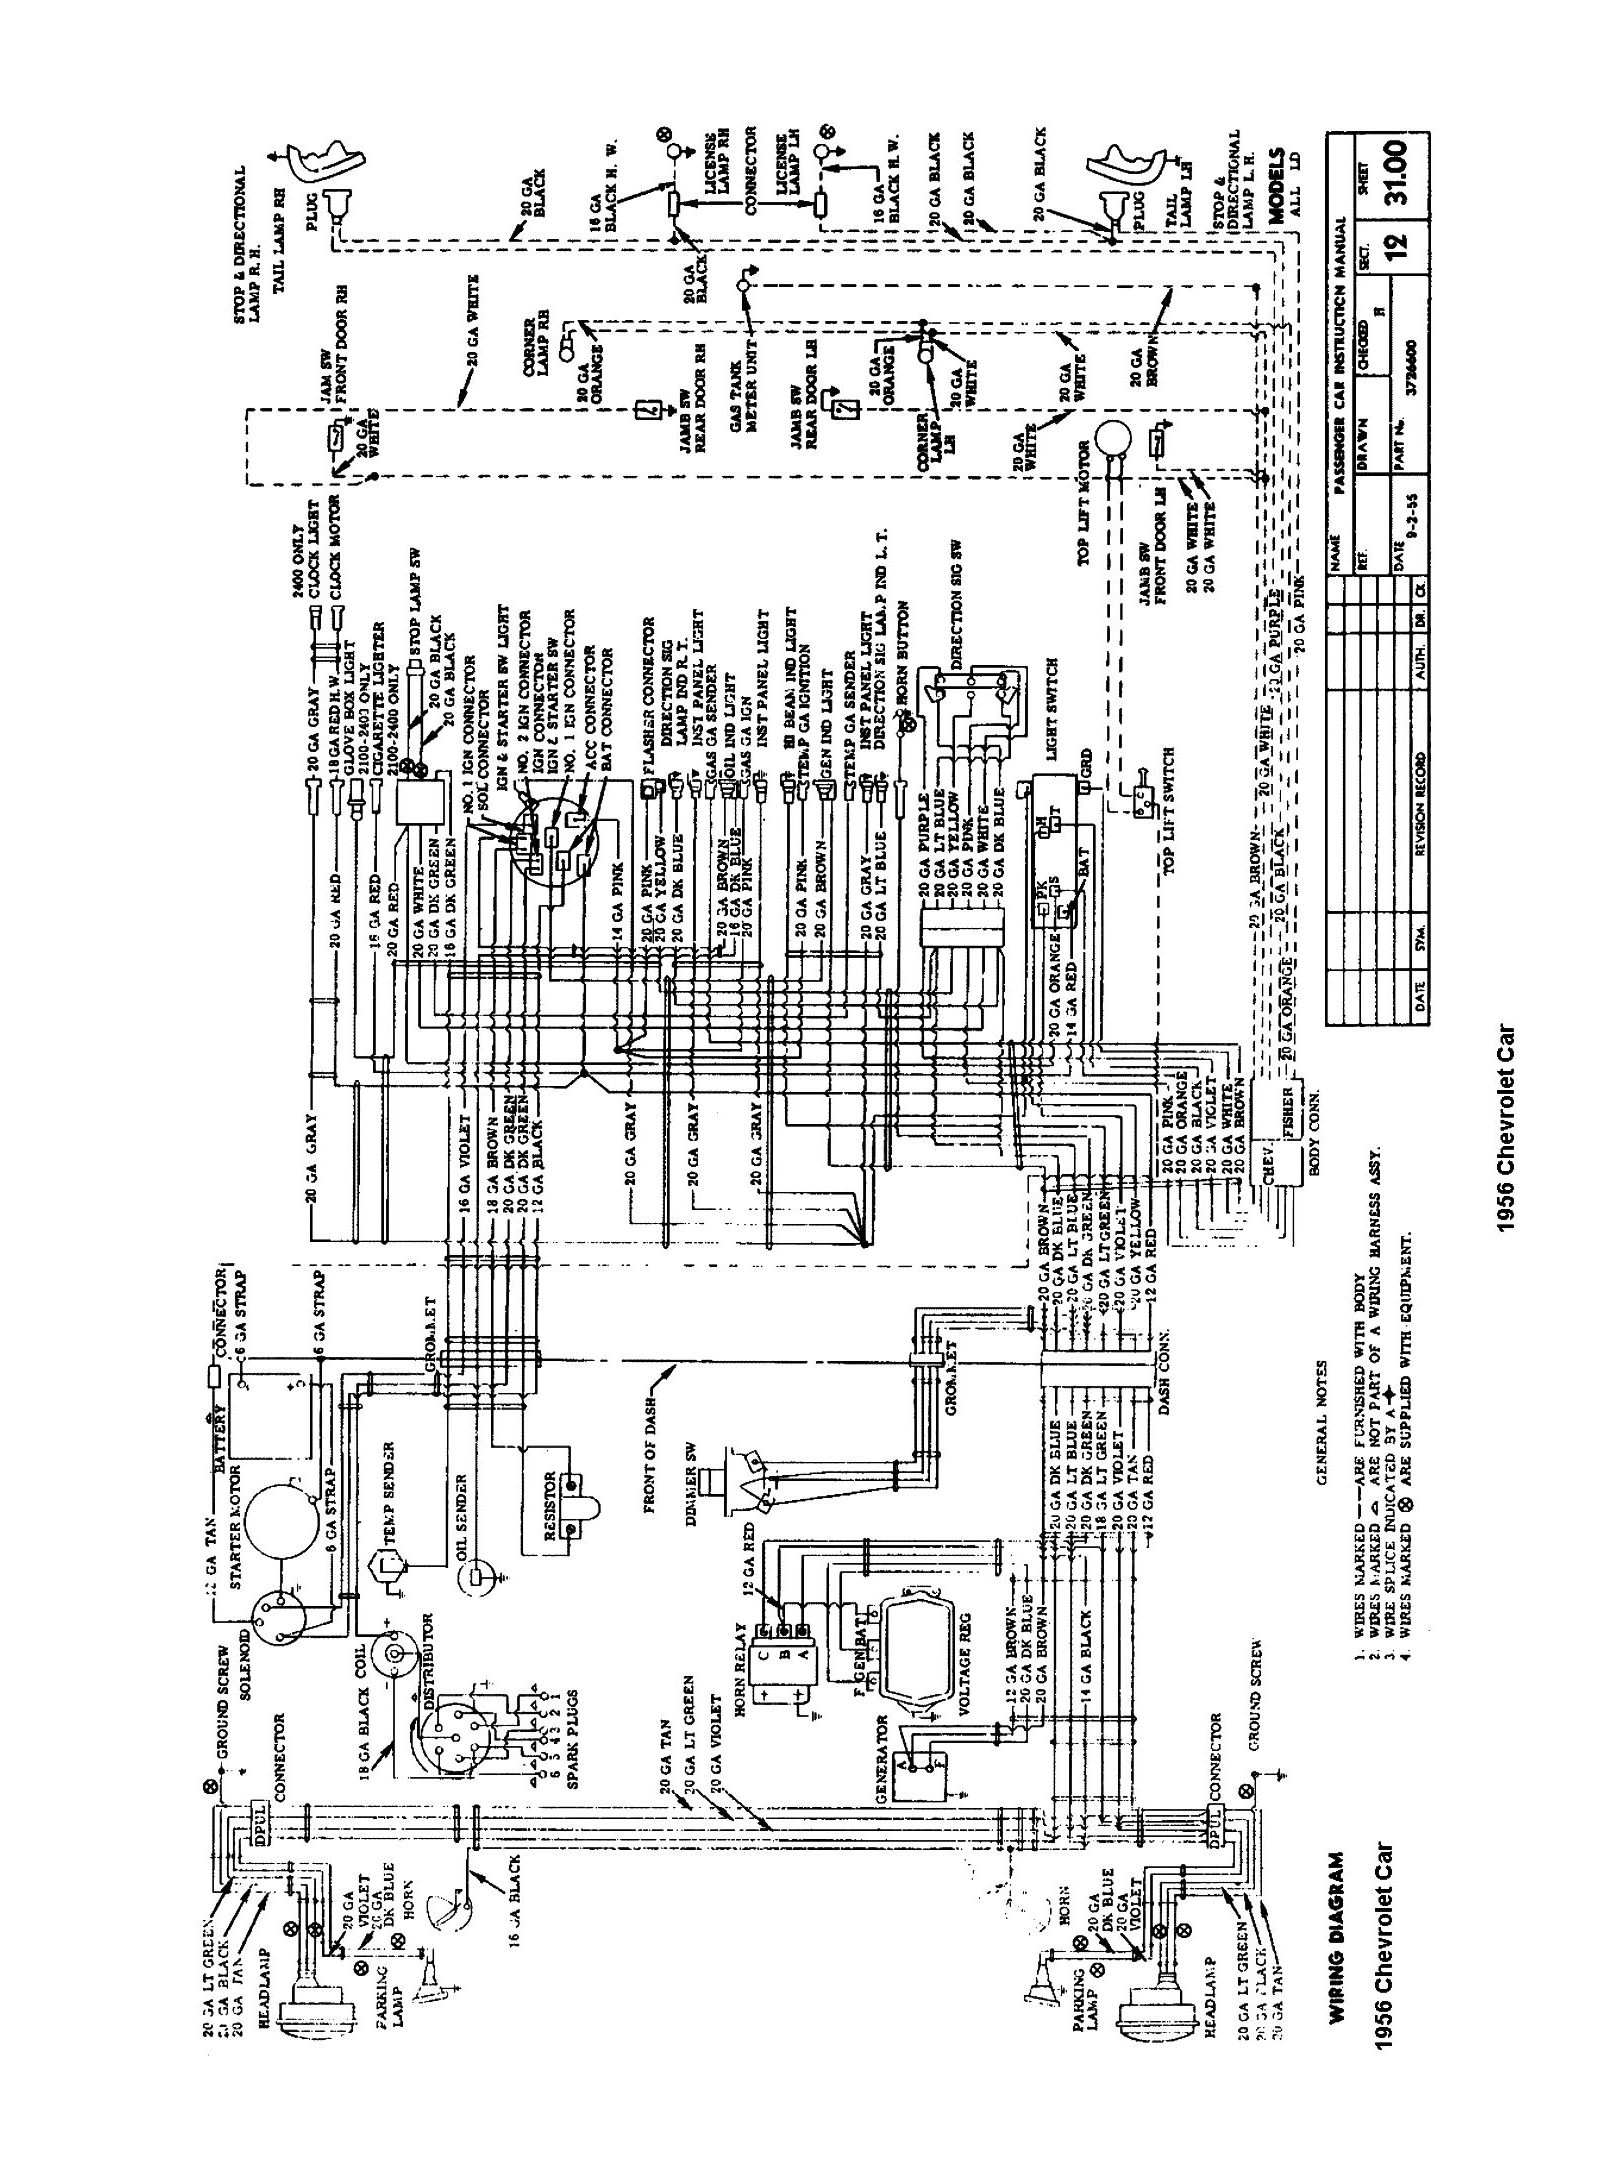 Chevy Pickup Wiring Diagram Wiring Diagram